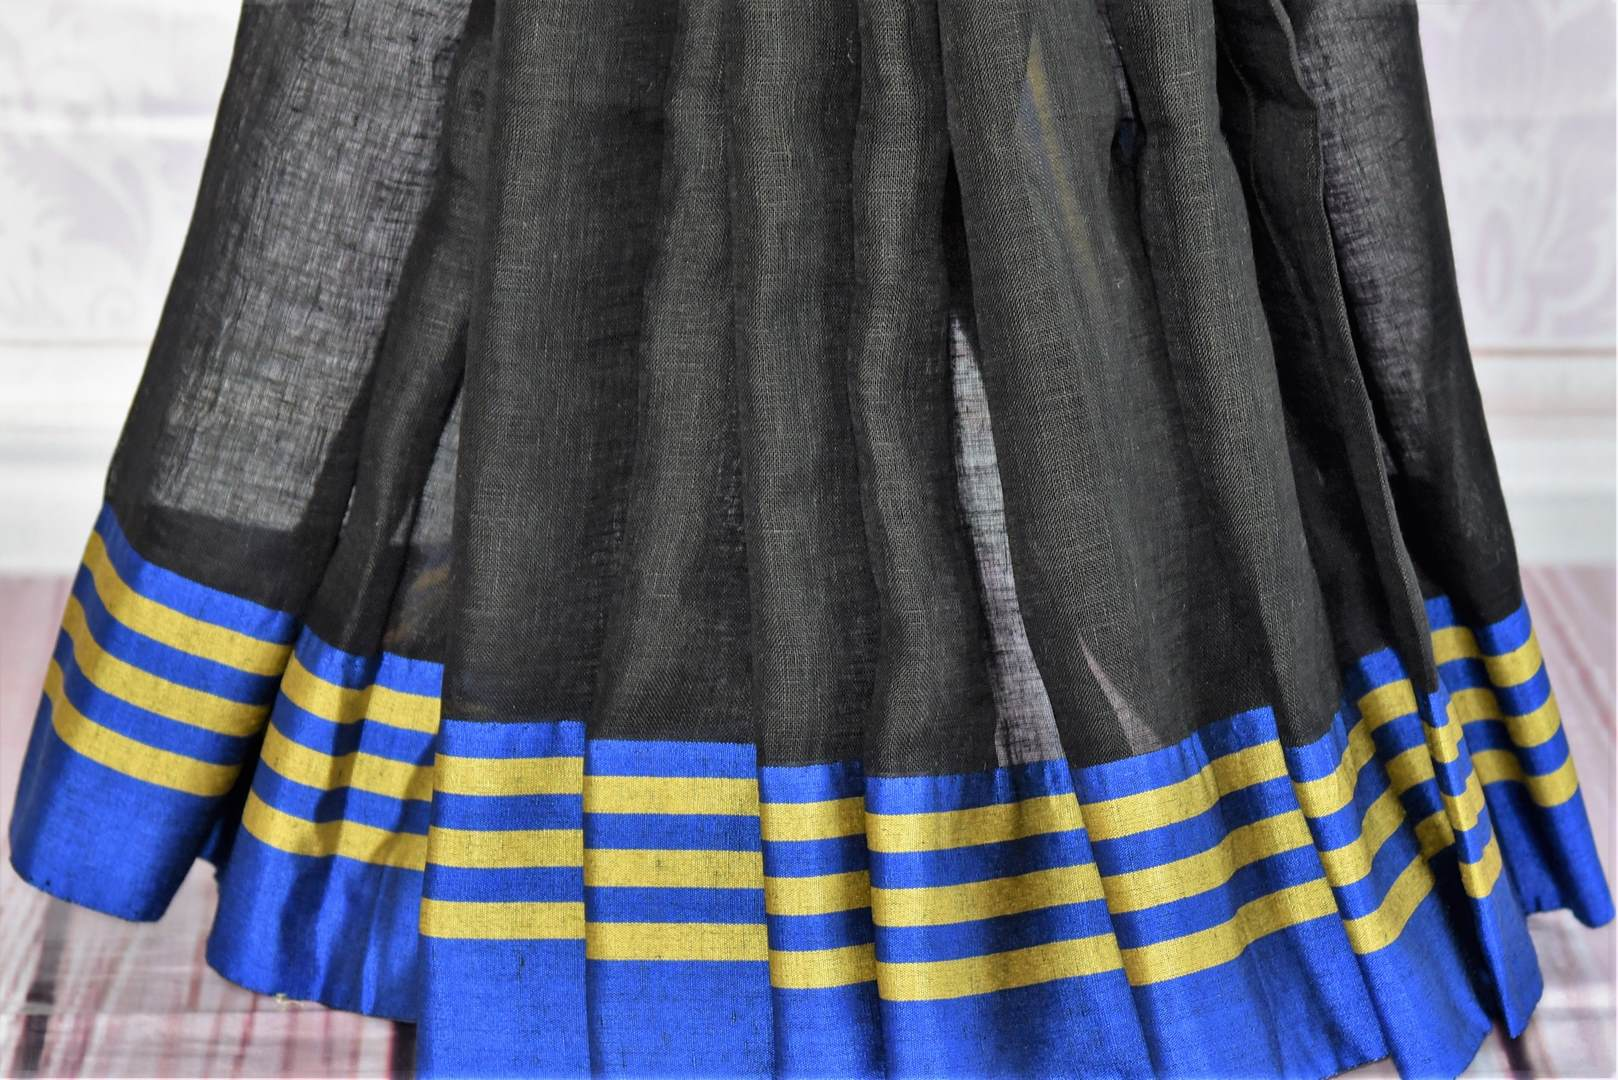 Buy black and grey linen saree with Banarasi blouse online in USA. Find an exquisite range of pure handloom sarees in USA at Pure Elegance Indian clothing store. Enhance your ethnic look with a variety of silk sarees, Banarasi saris, Kanchipuram, and Indian jewelry available at our online store.-pleats